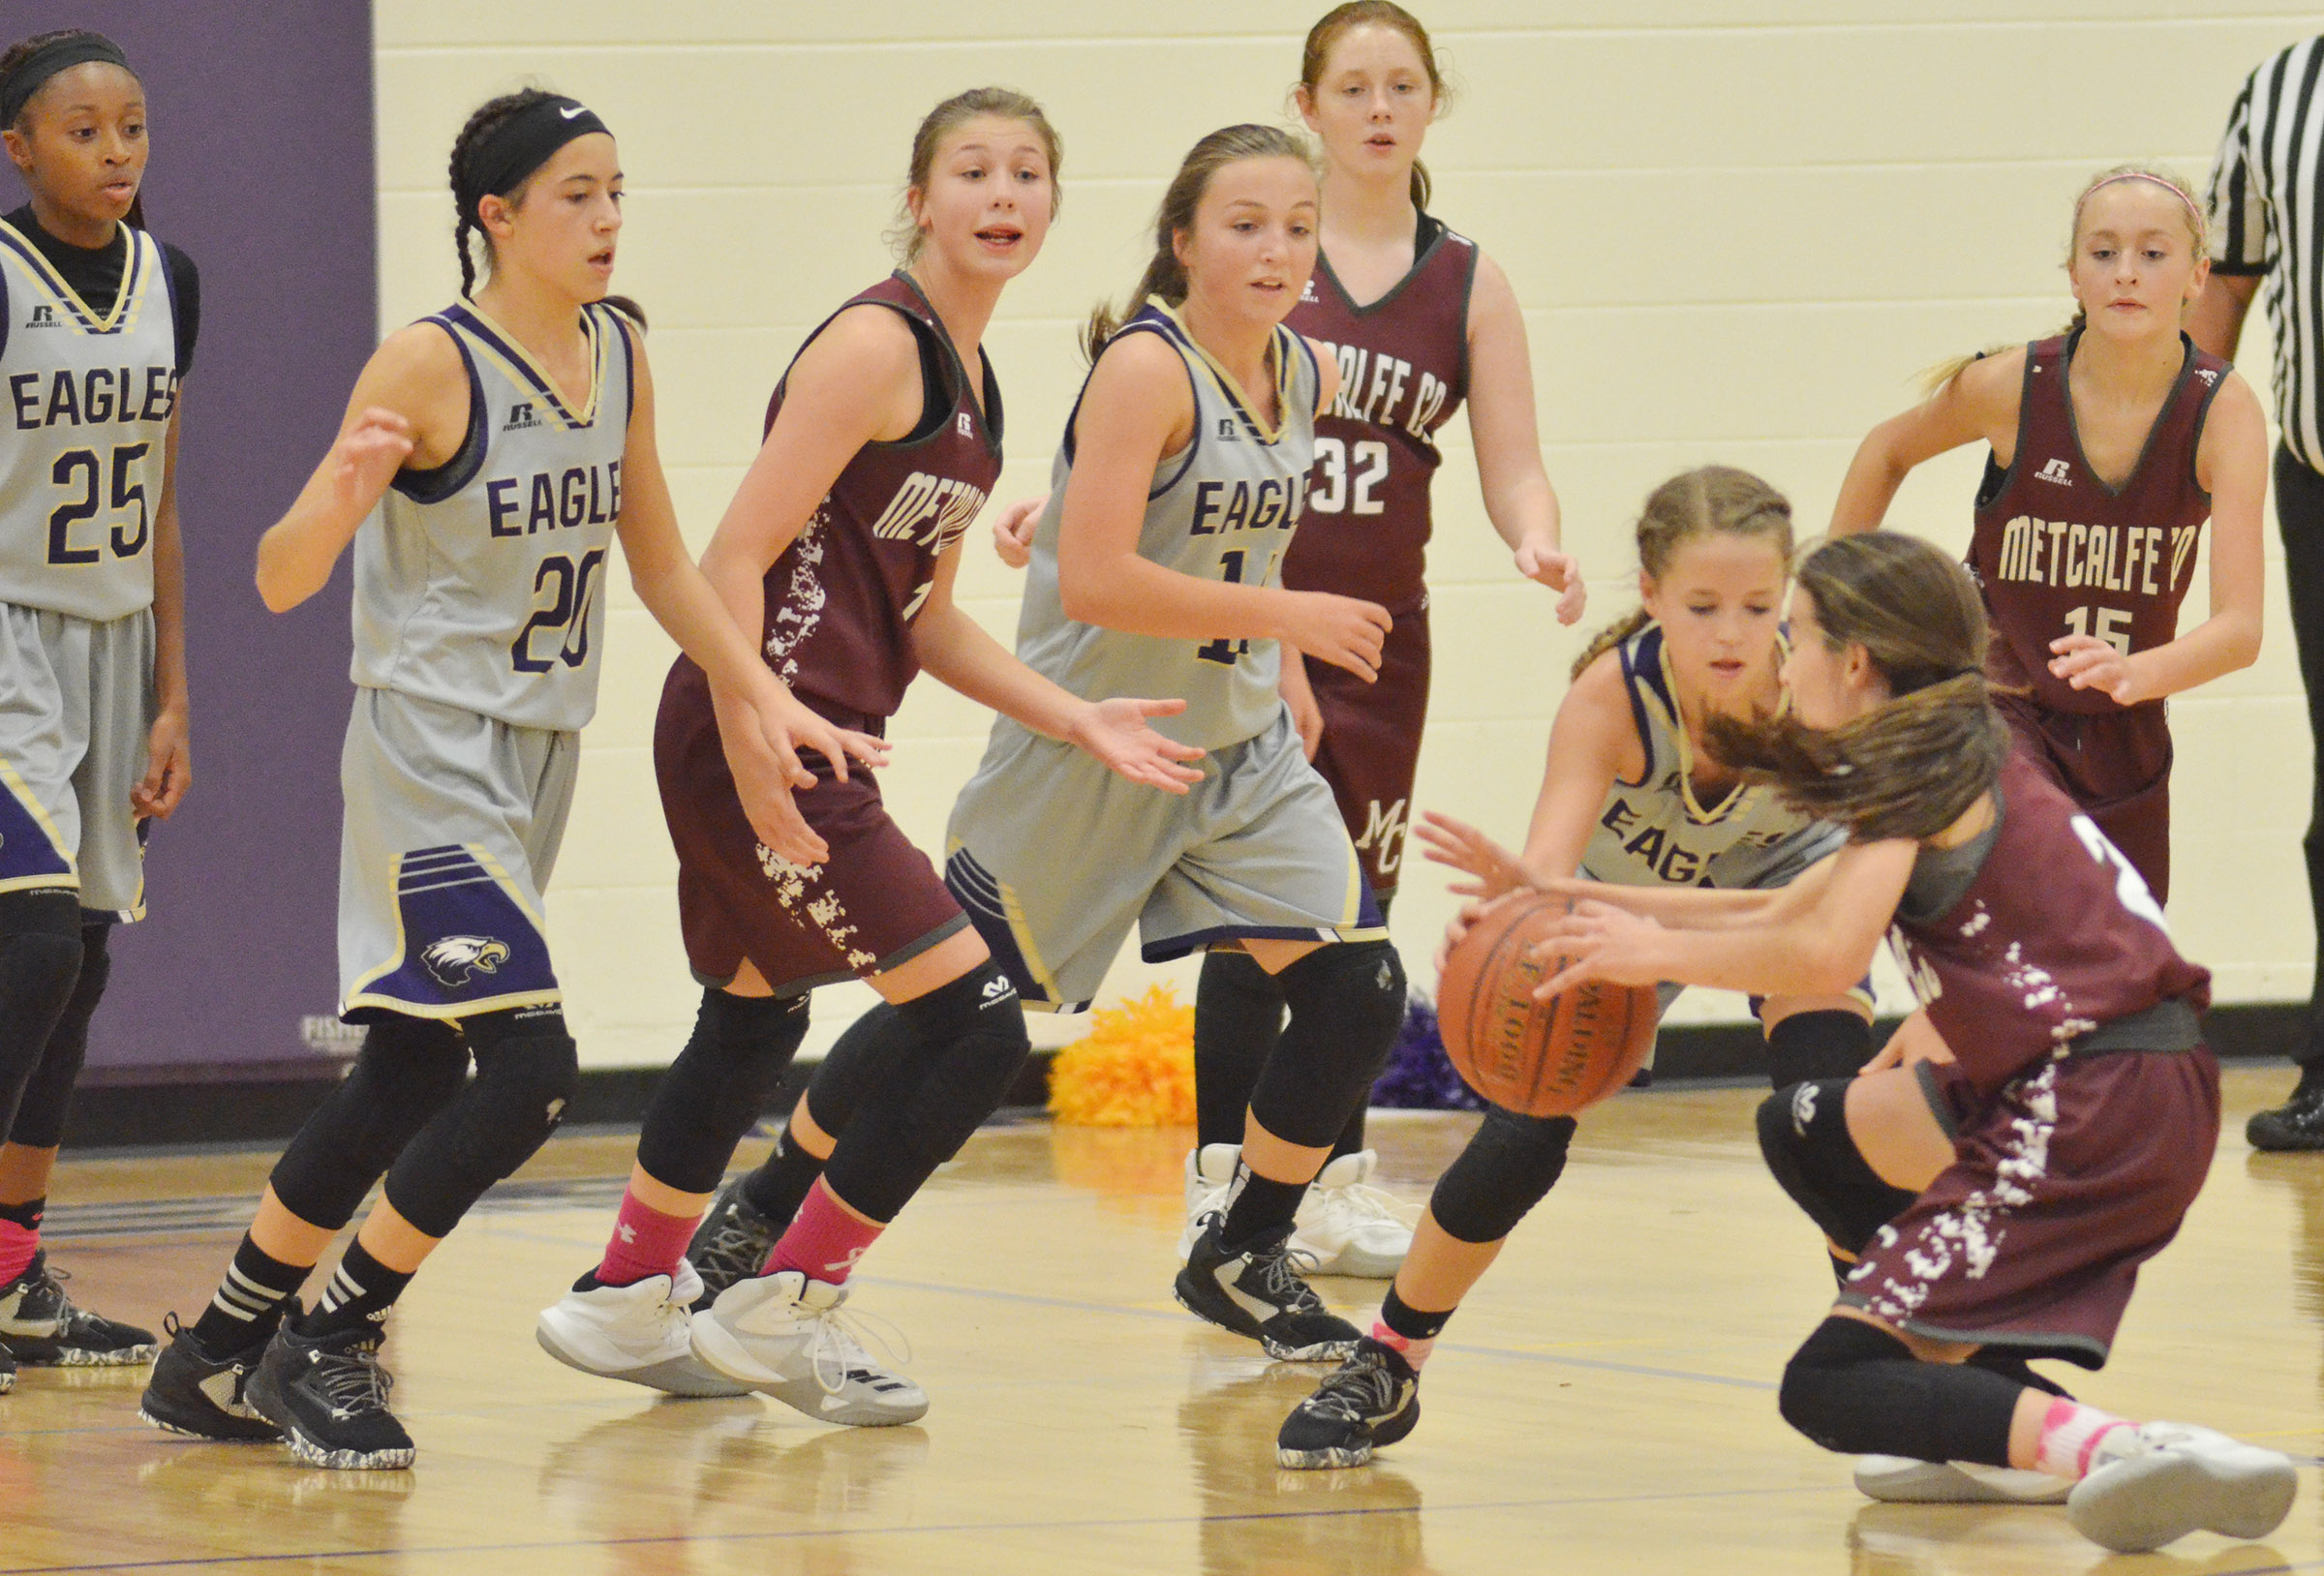 From left, CMS eighth-graders Bri Gowdy, Kaylyn Smith, Lainey Watson and Rylee Petett battle for the ball.